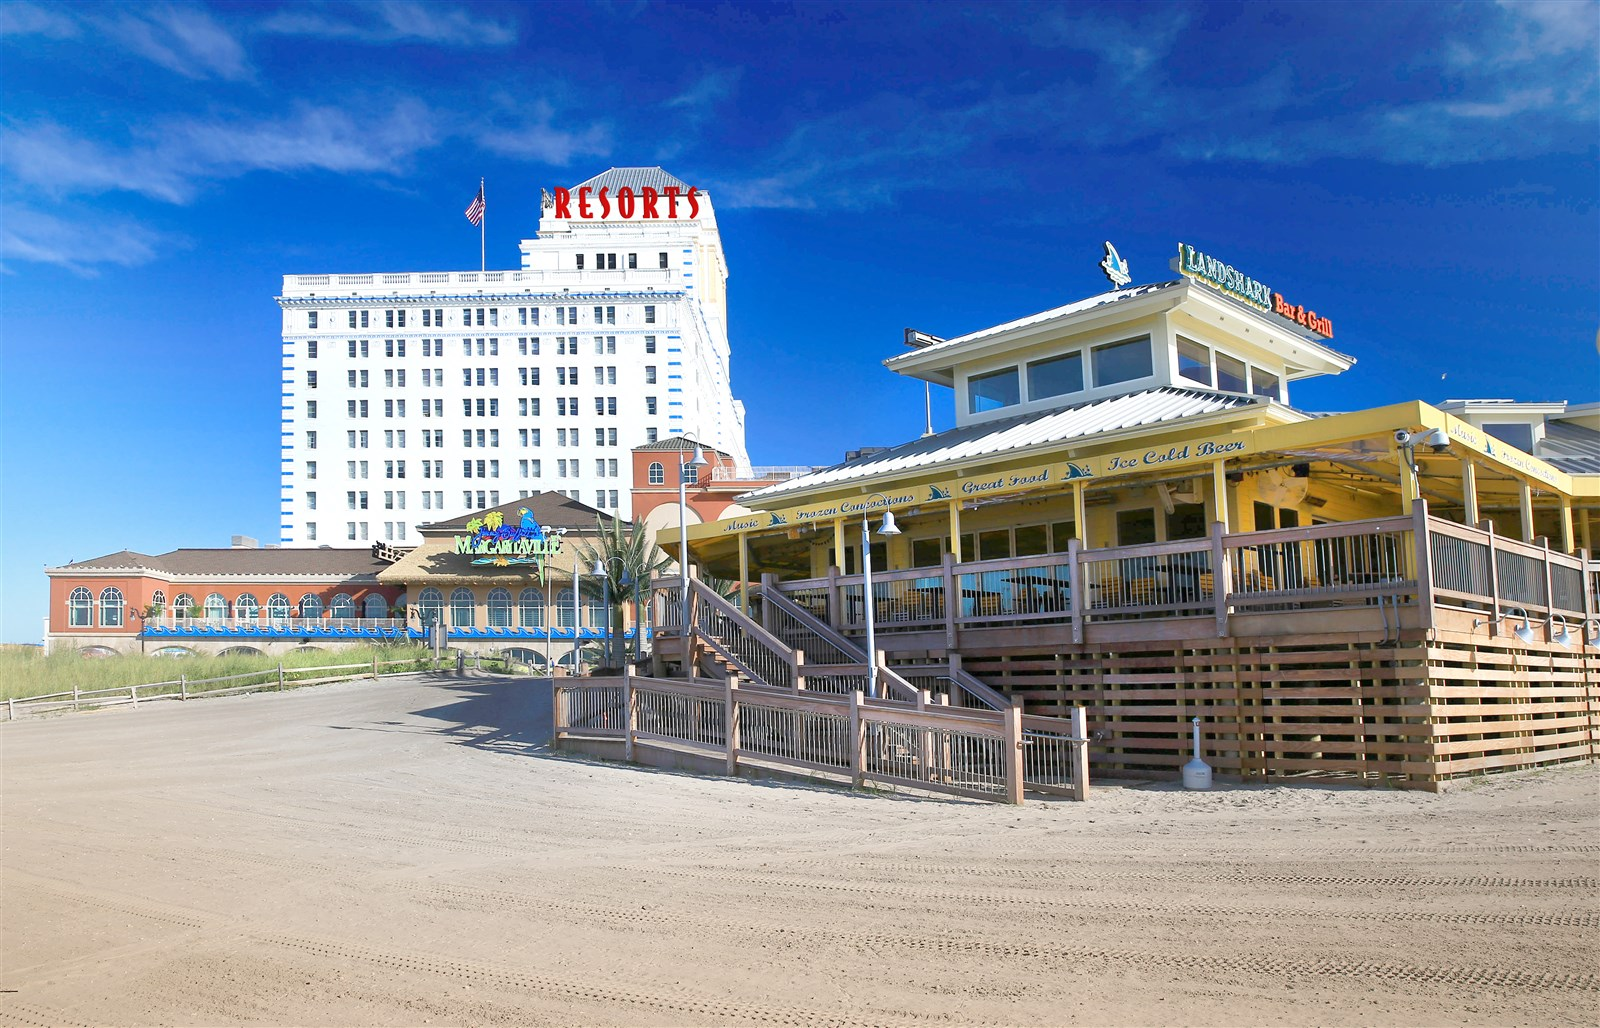 The Resorts Atlantic City Casino Hotel is a huge megaresort with several towers. The rooms vary depending on the tower you are staying in, there are rooms which have outdated decors, antique type of walls and some may require fixing.